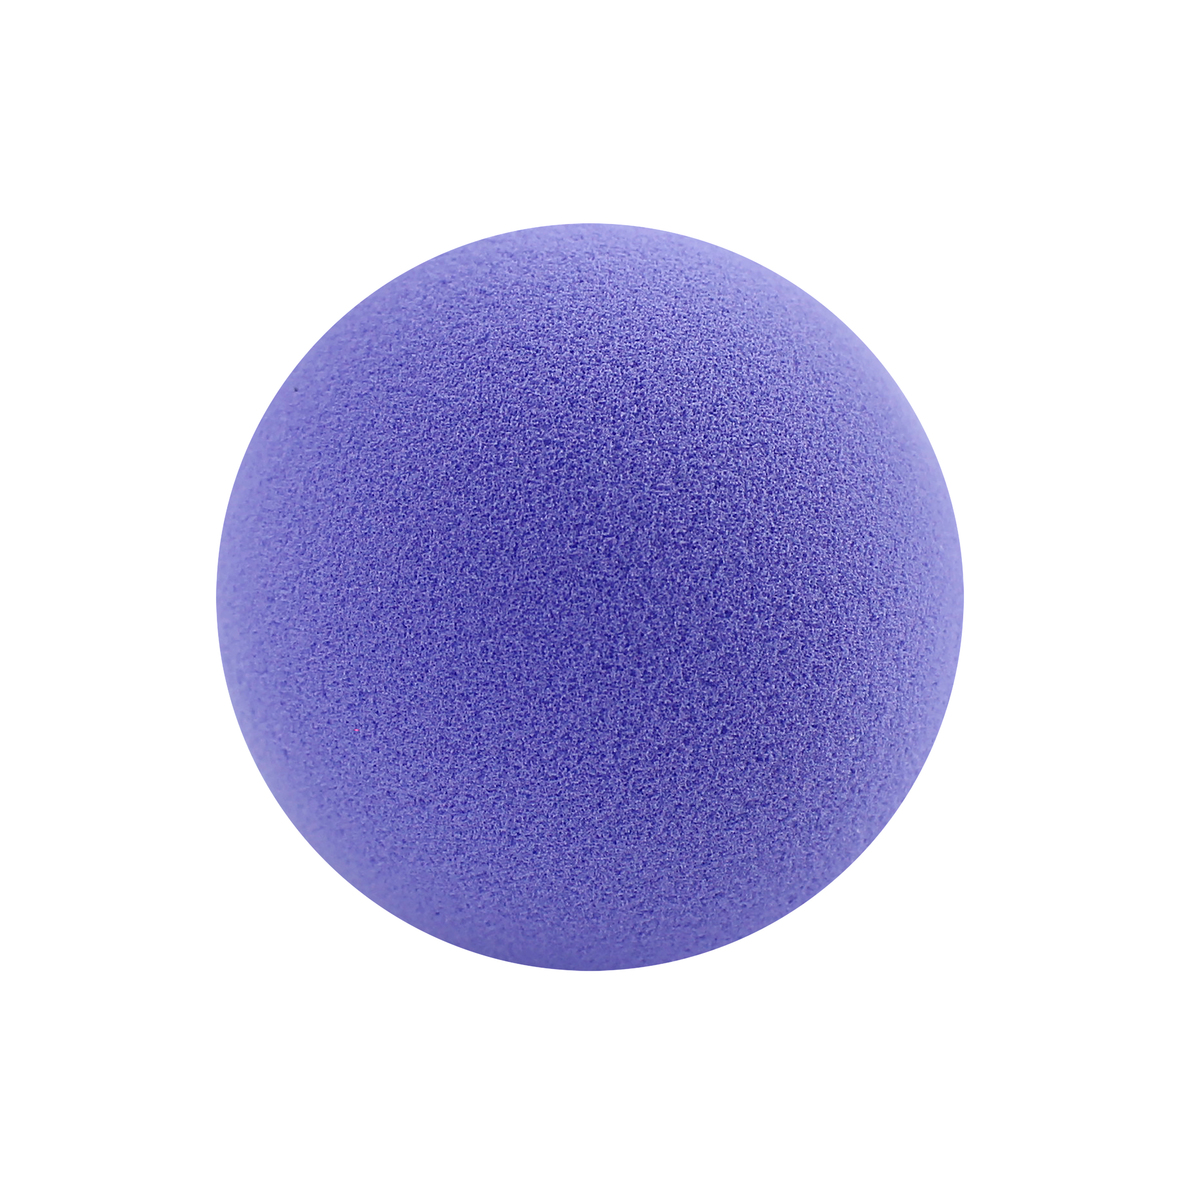 MIRACLE BEAUTY BALL